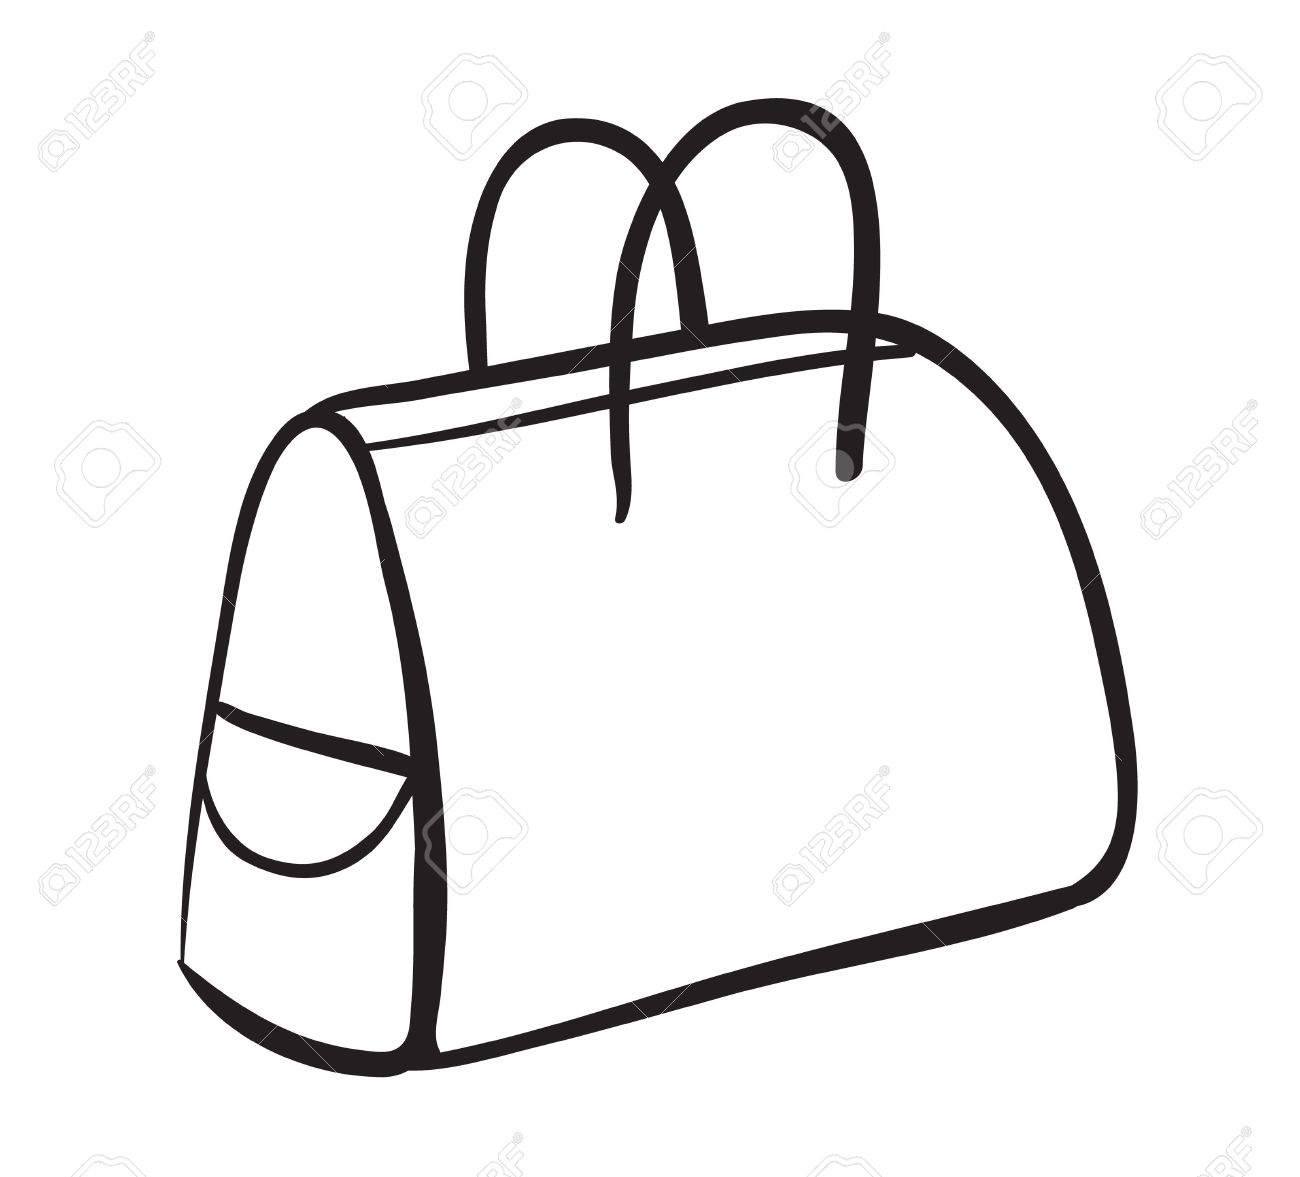 Clipart sac a main jpg royalty free stock Illustration D'un Sac à Main Sur Un Fond Blanc Clip Art Libres De ... jpg royalty free stock